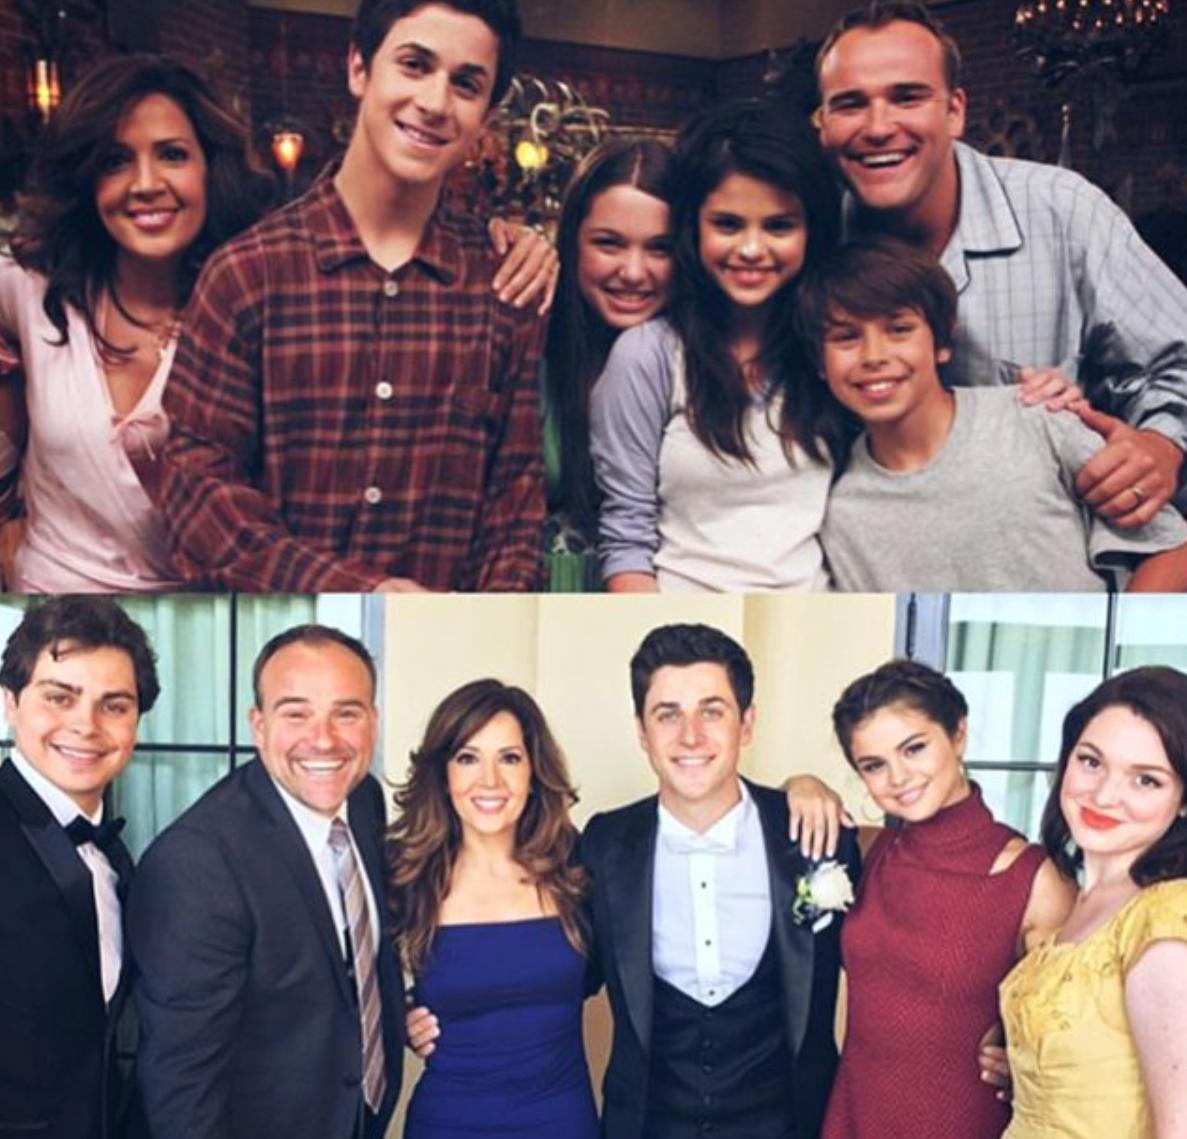 Selena Gomez and the cast of Wizards of Waverly Pl